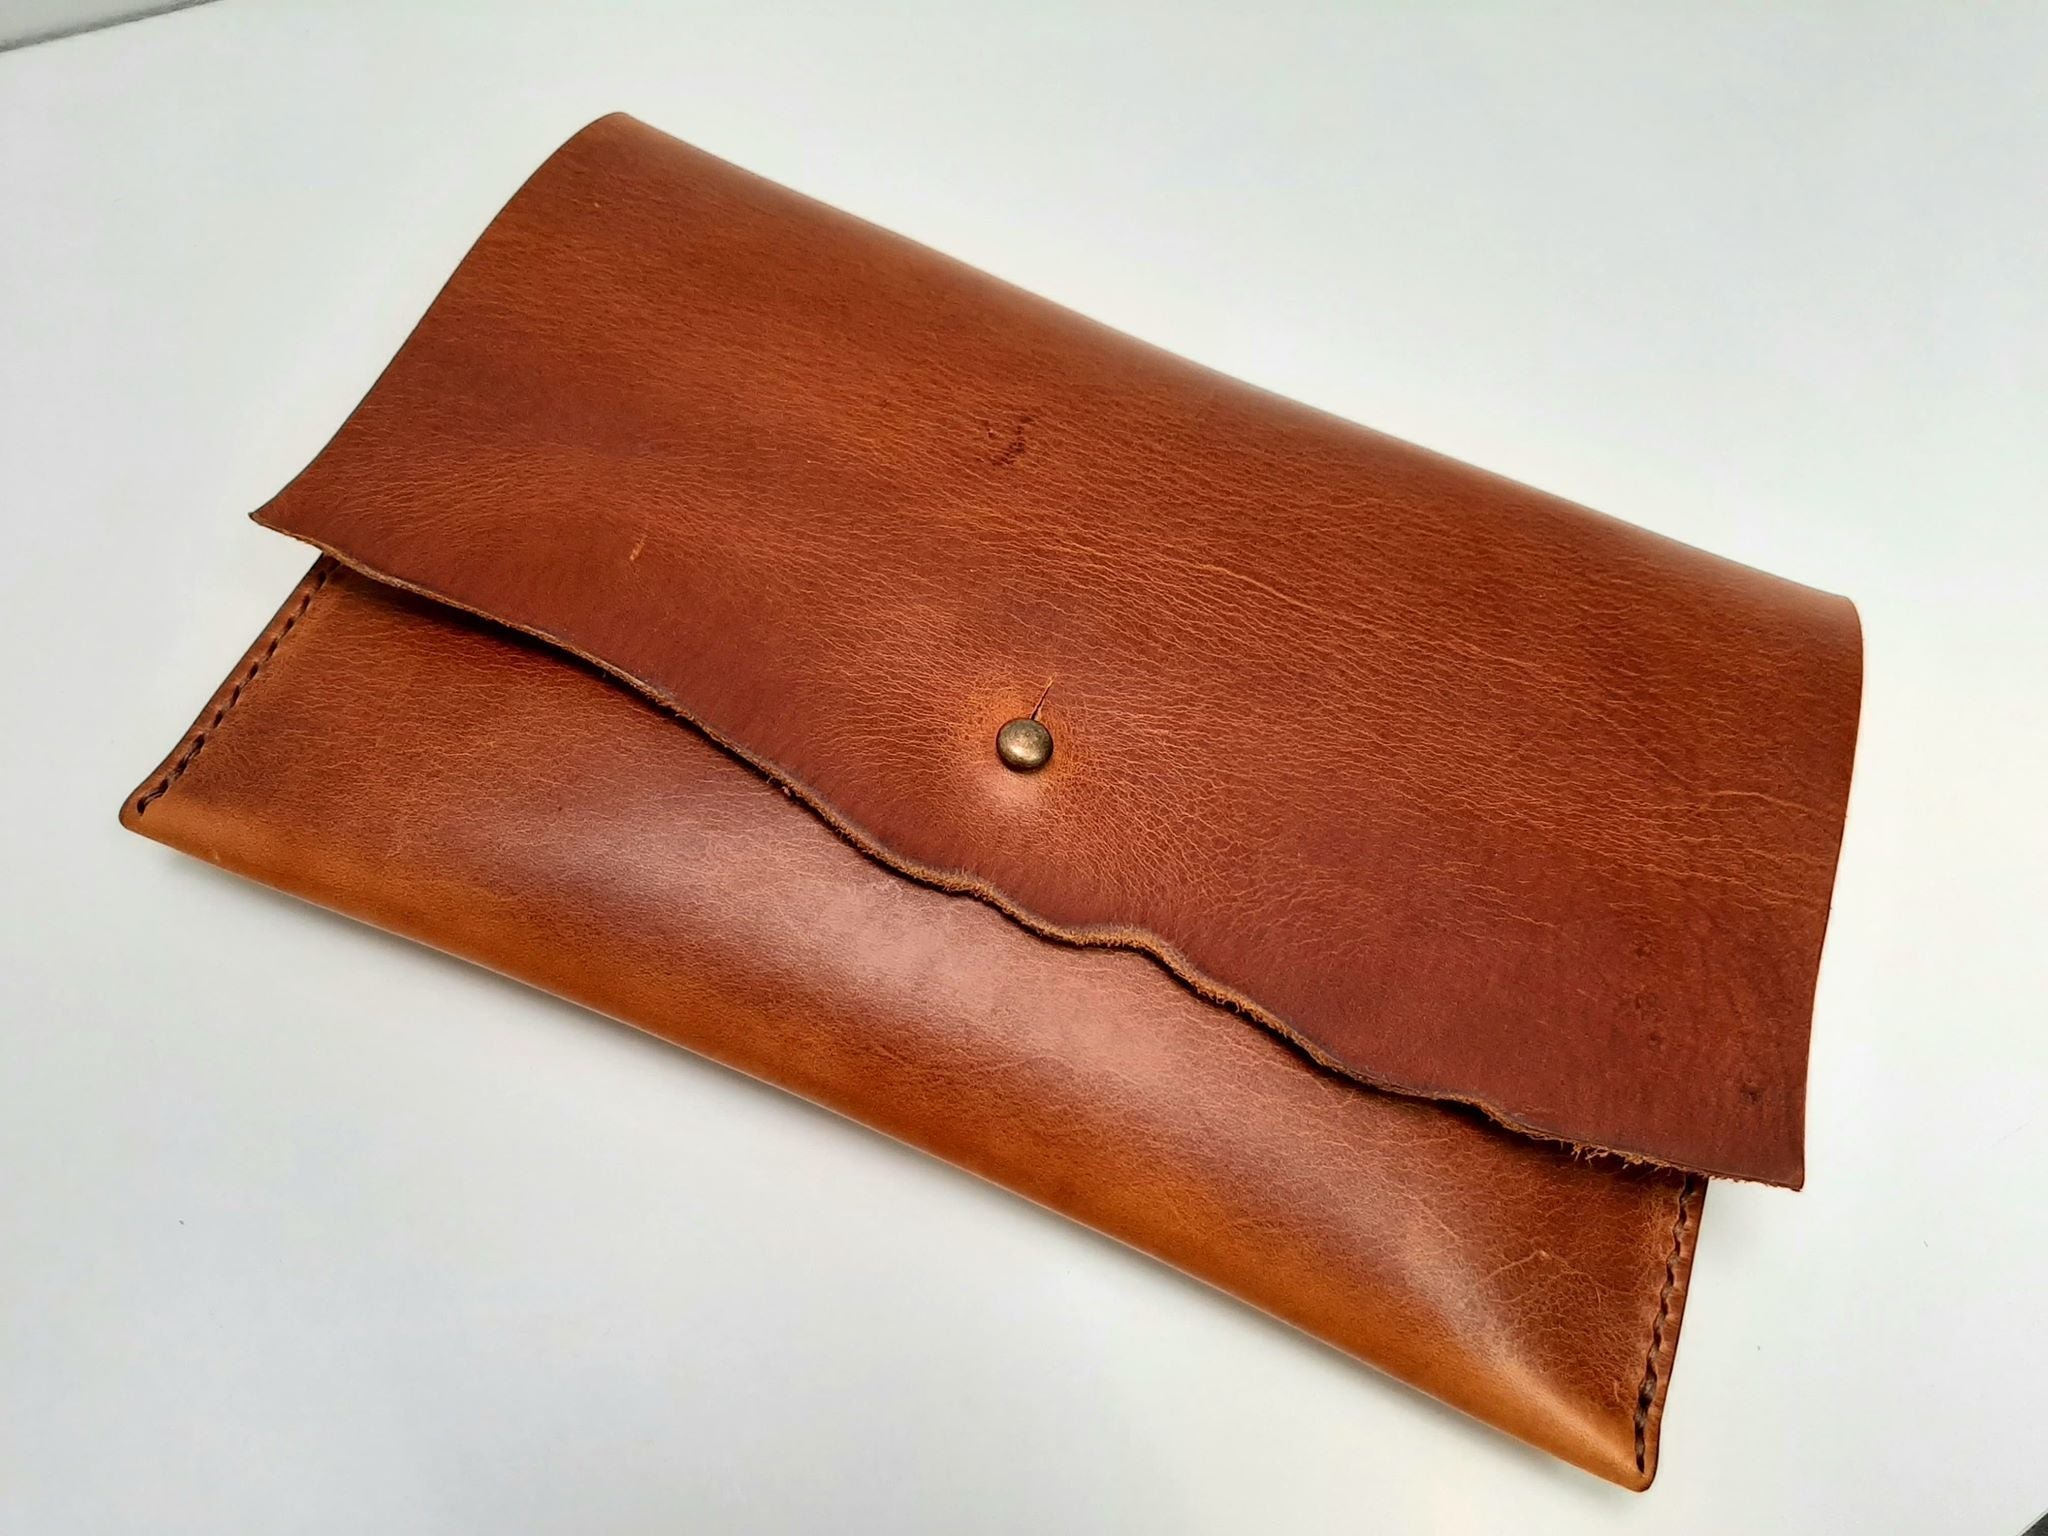 Raw Edge Clutch Purse - Tan - Coterie Leather Bags